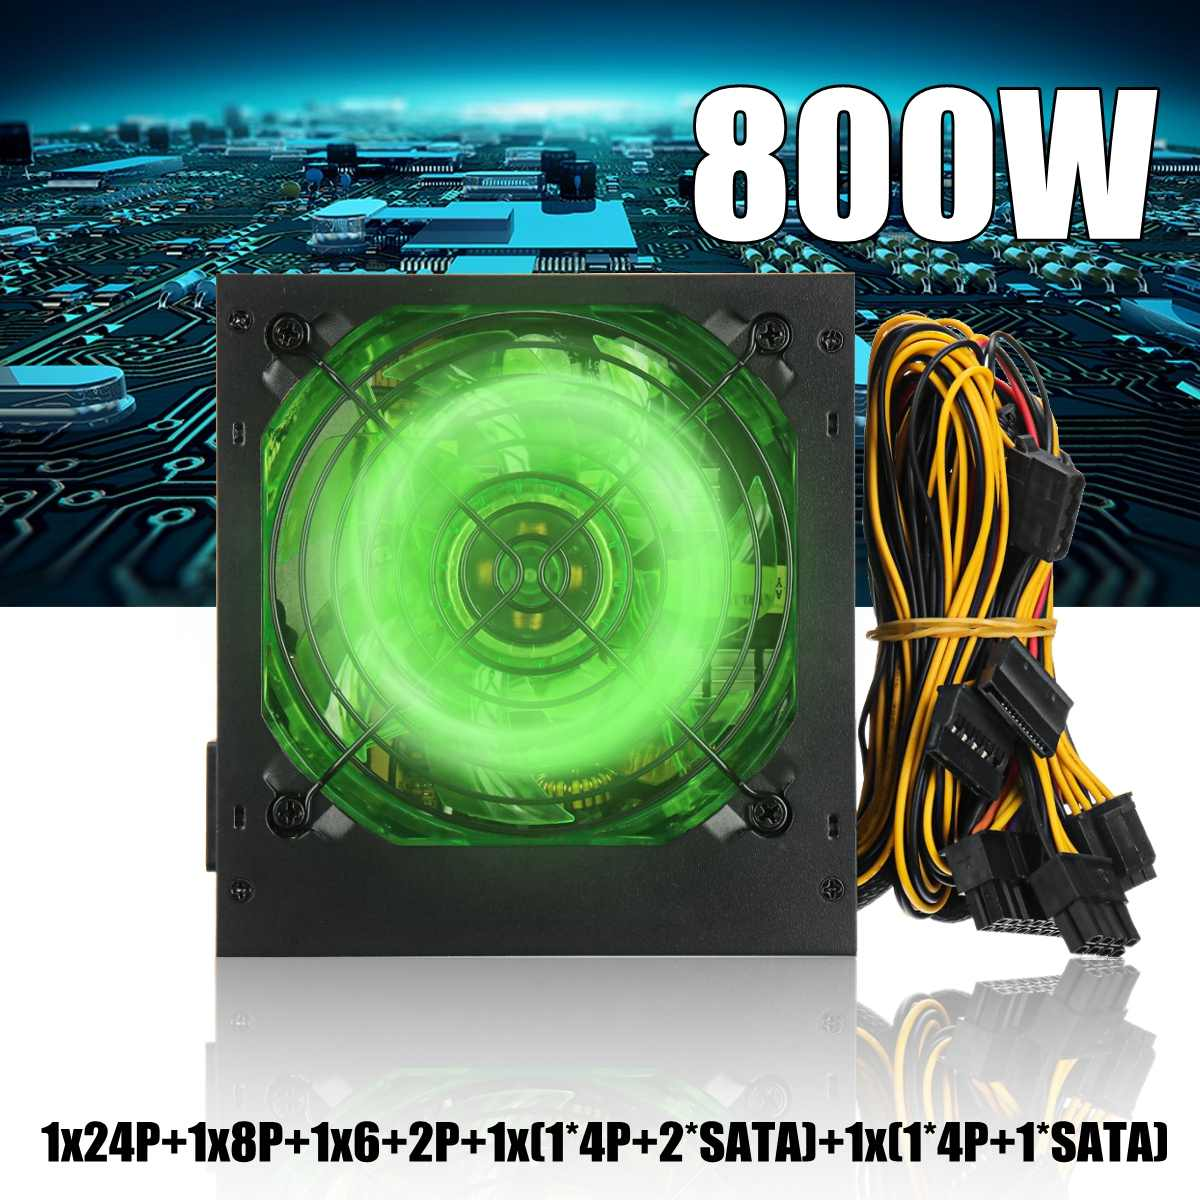 800w 110 220v Pc Power Supply 12cm Led Silent Fan With Intelligent Temperature Control Intel Amd Atx 12v For Desktop Computer Pc Power Supplies Aliexpress